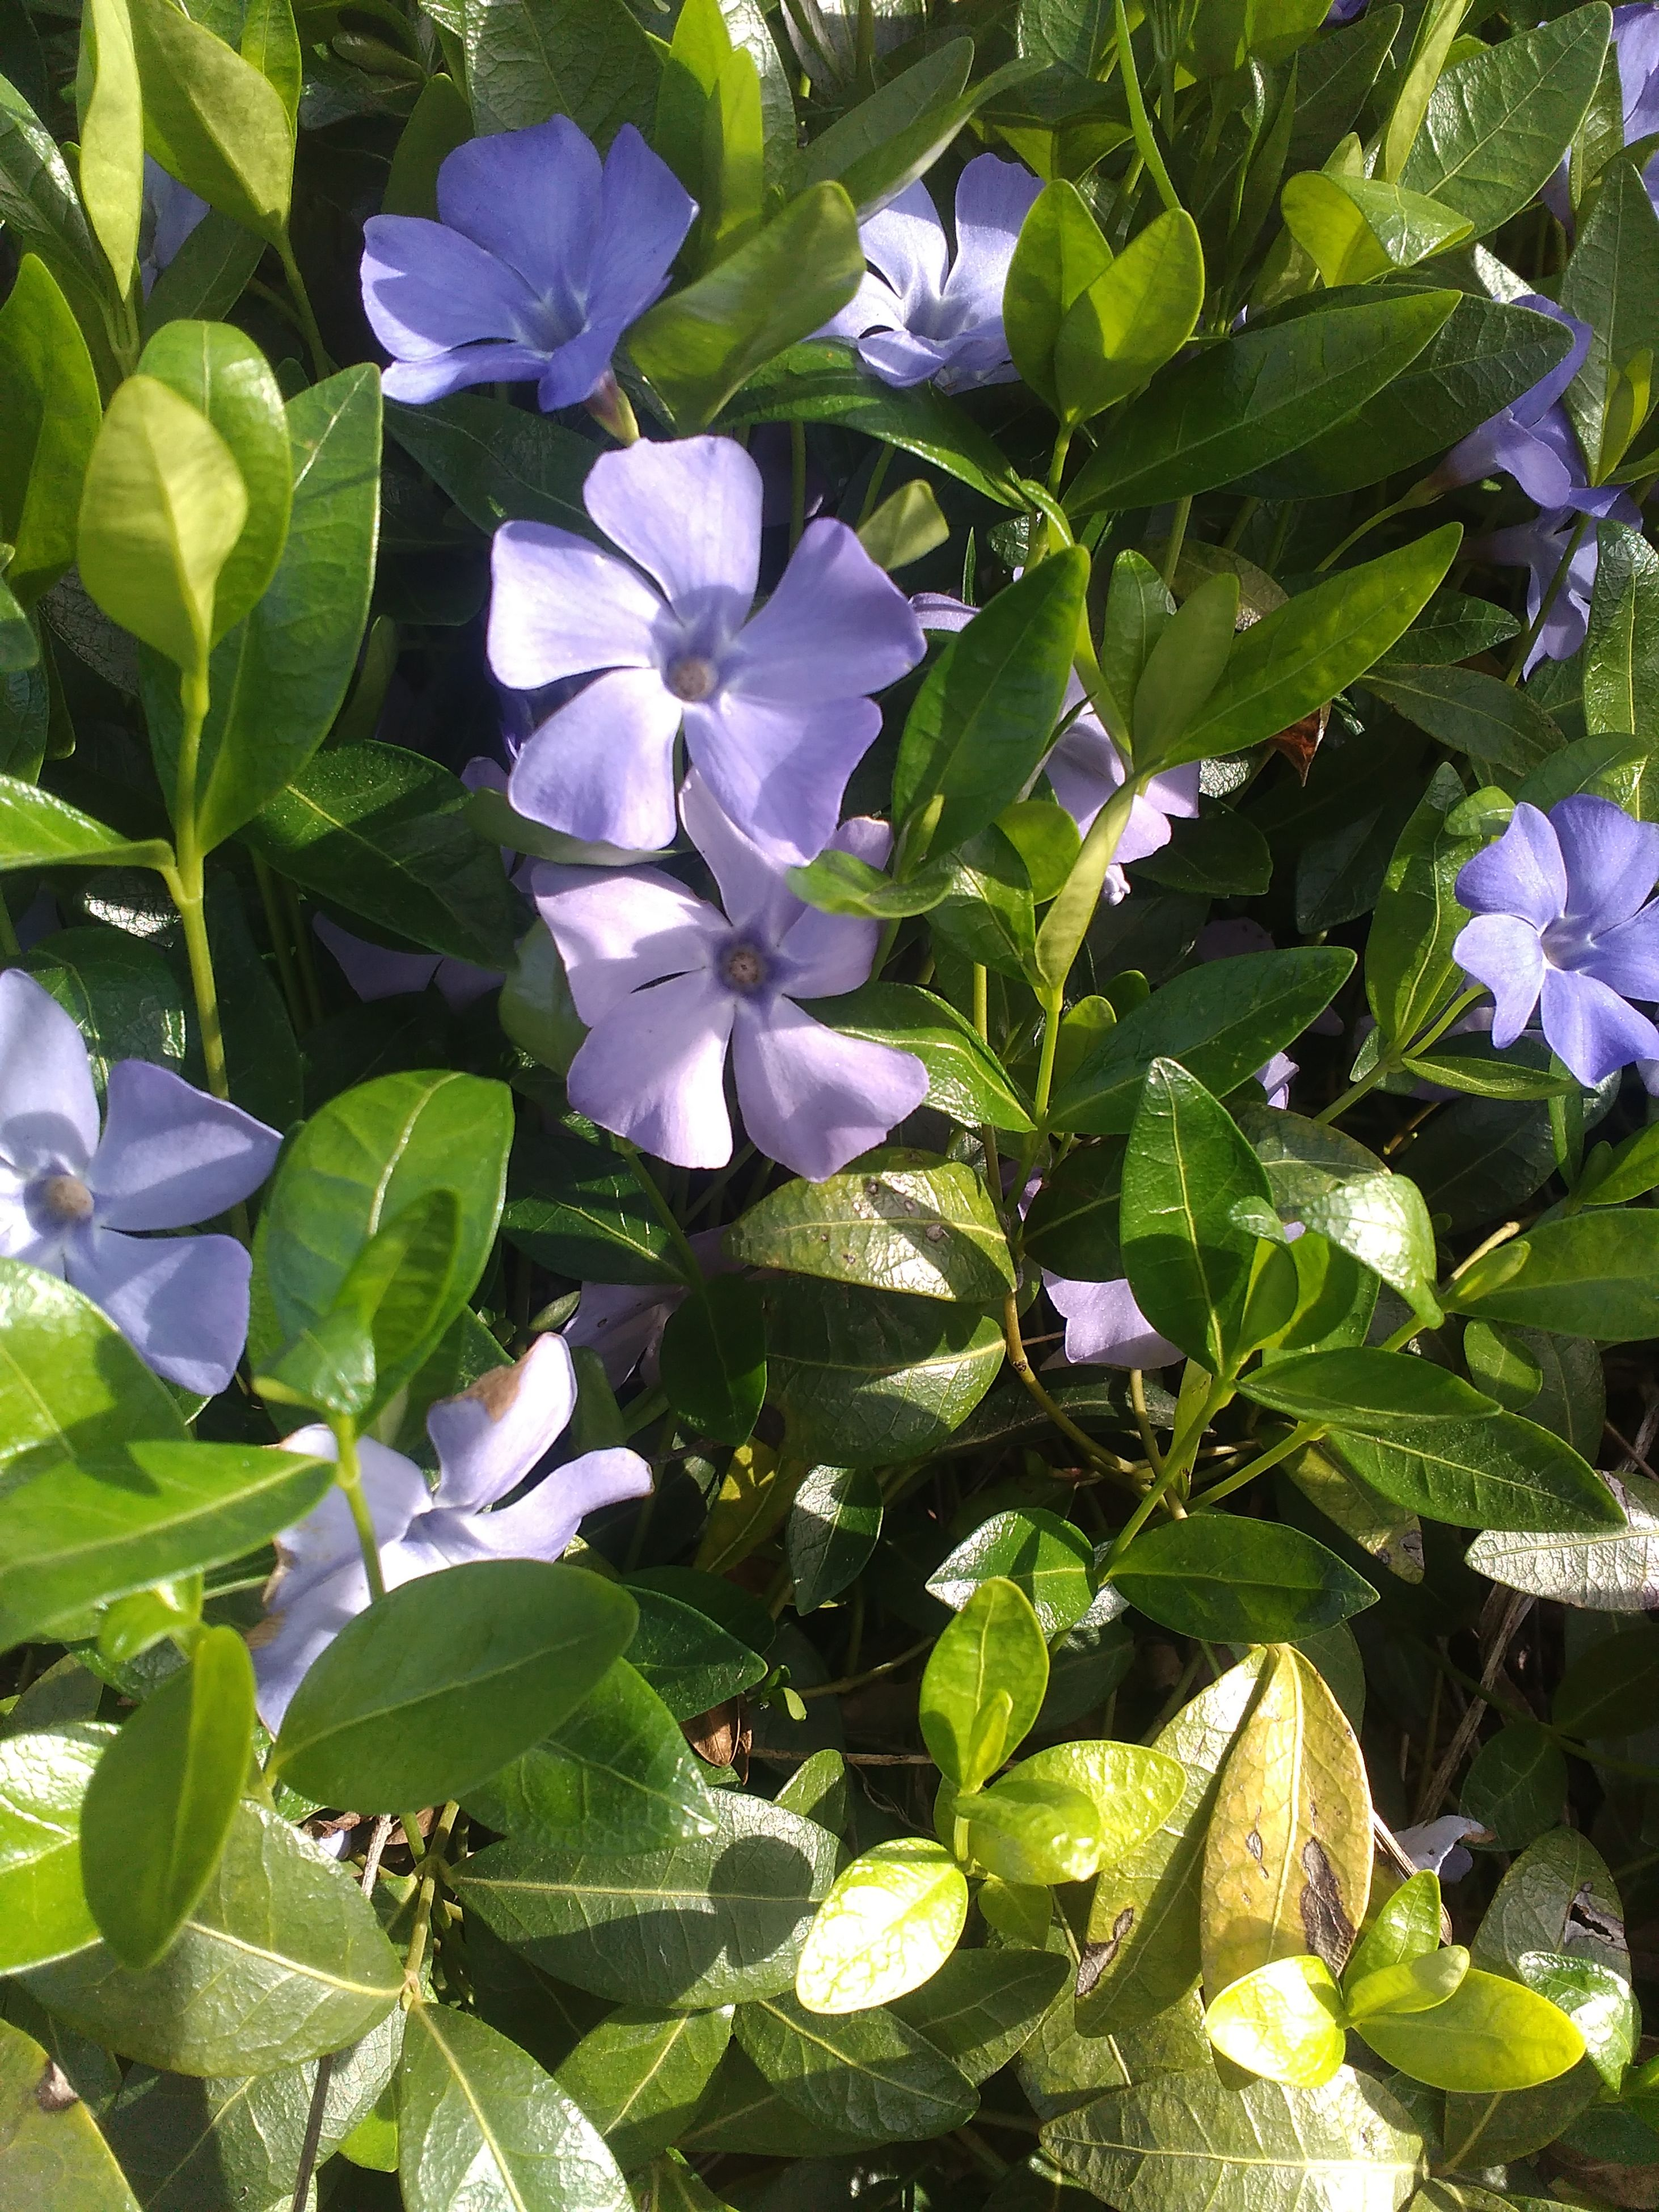 flower, leaf, growth, petal, beauty in nature, nature, fragility, plant, green color, day, freshness, no people, blooming, outdoors, flower head, close-up, periwinkle